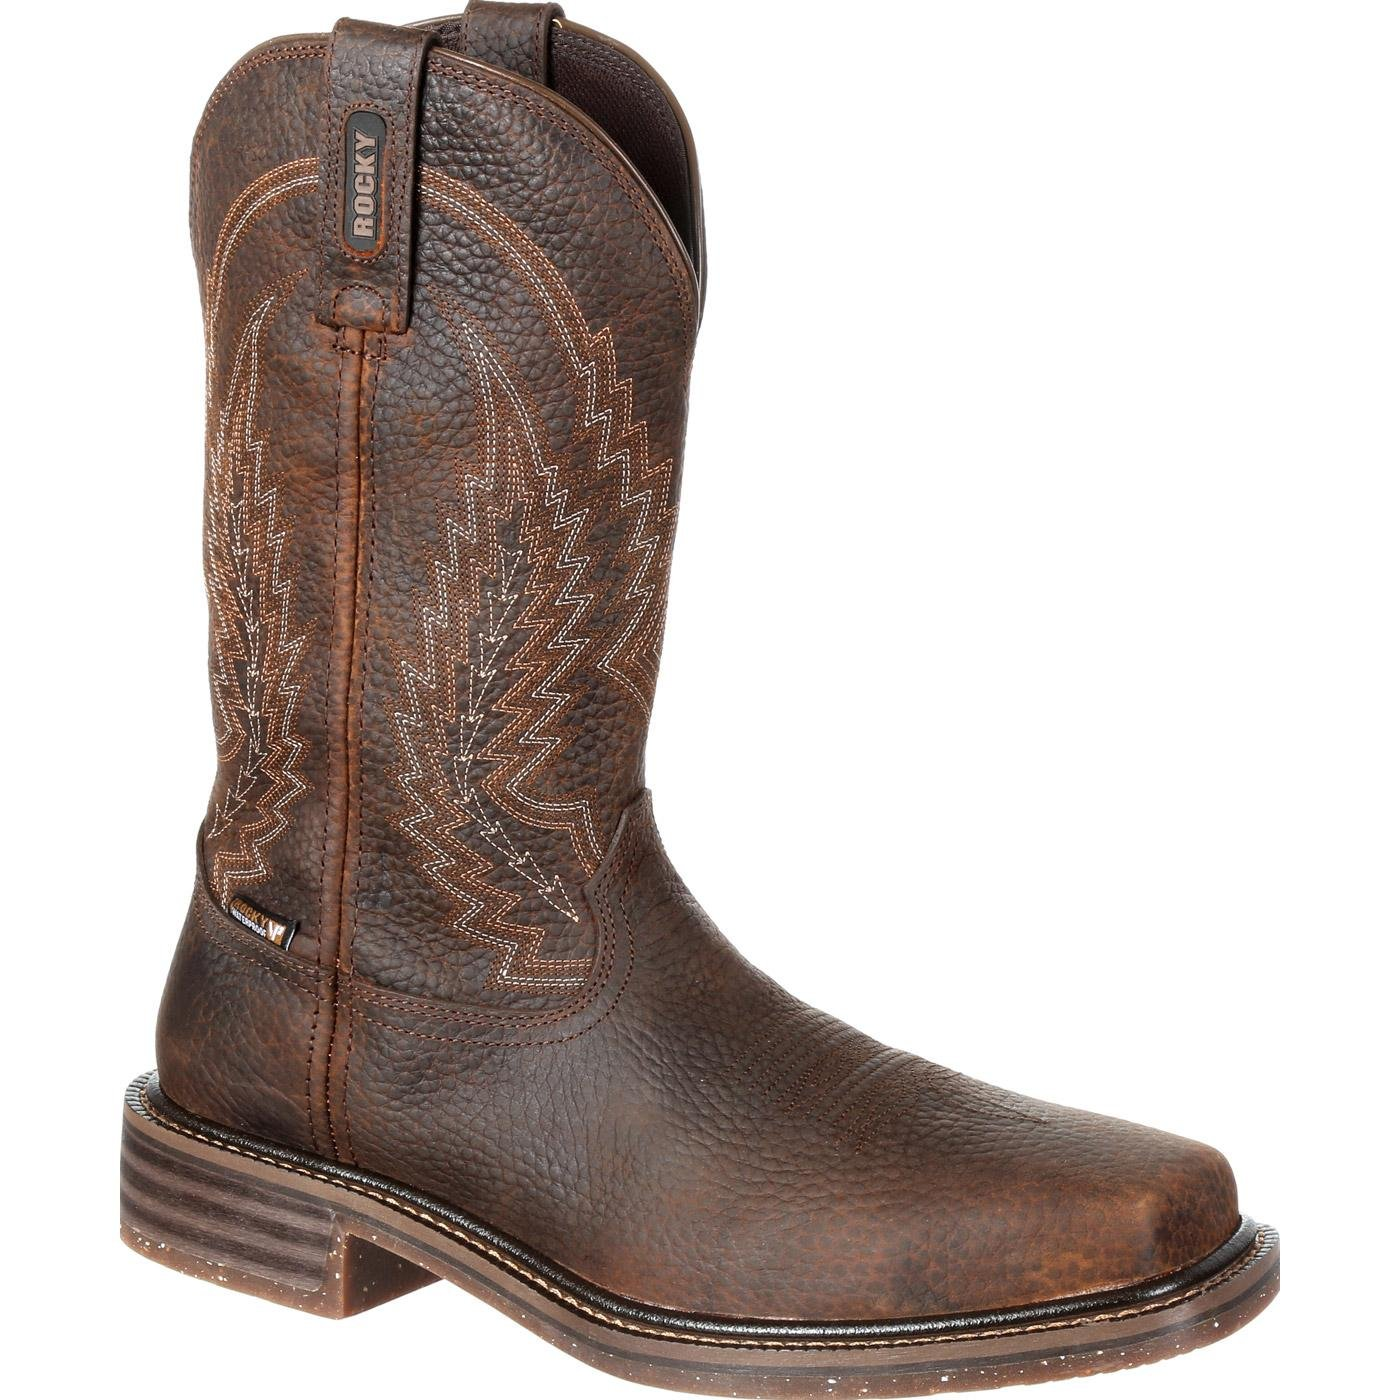 Rocky Western Boots Mens Riverbend 12'' Waterproof 12 W Dark Brown RKW0228 by ROCKY